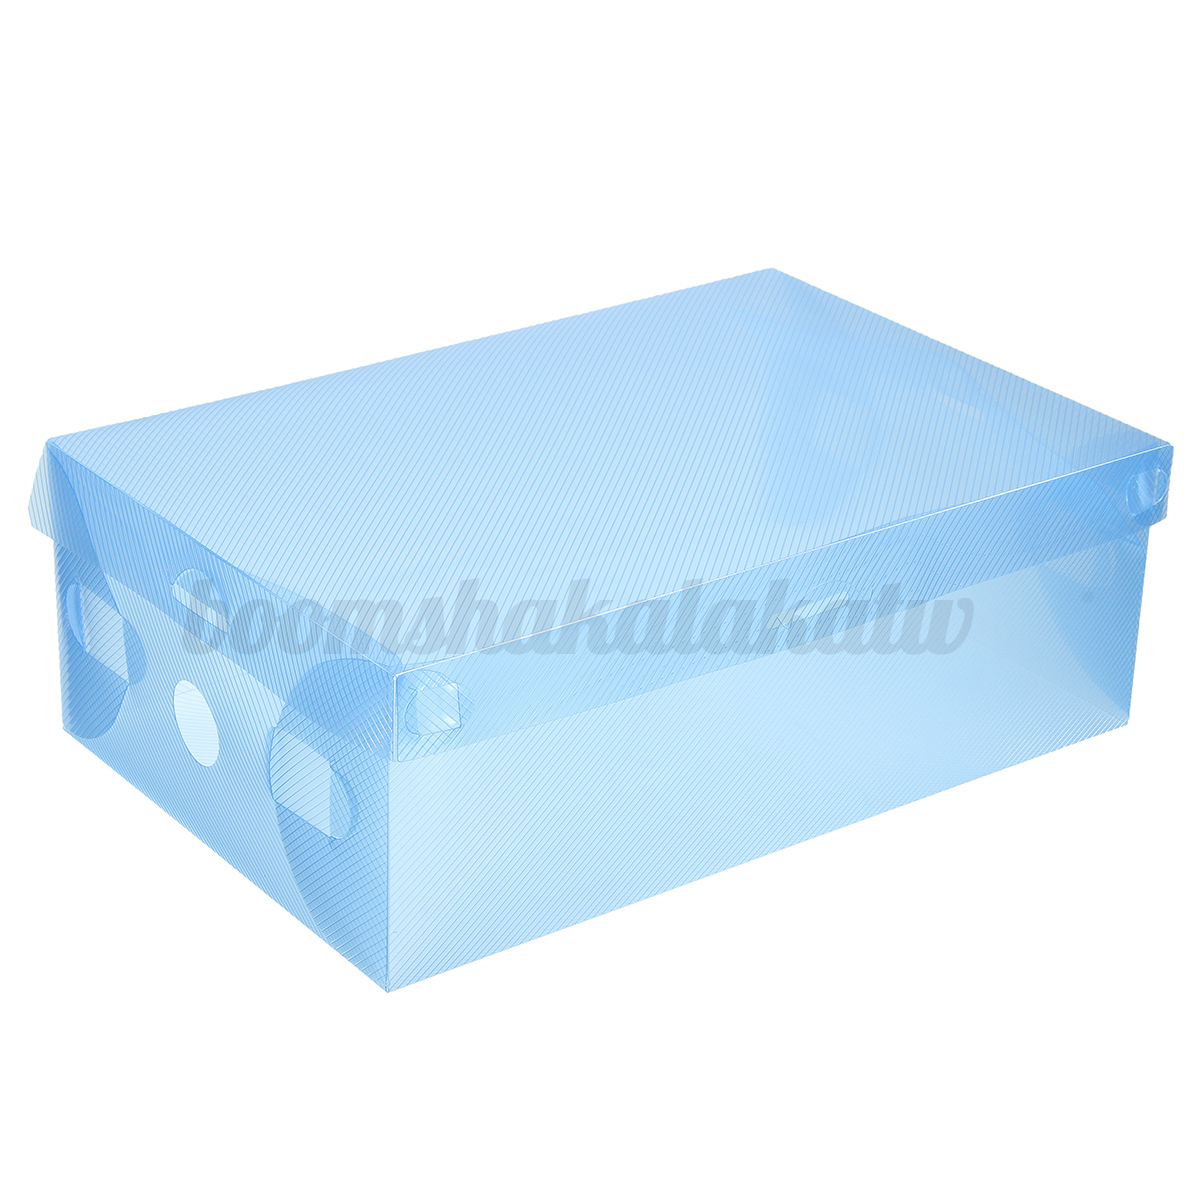 Shoe Box Australia Transparent Plastic Shoe Storage Organiser Foldable Boxes